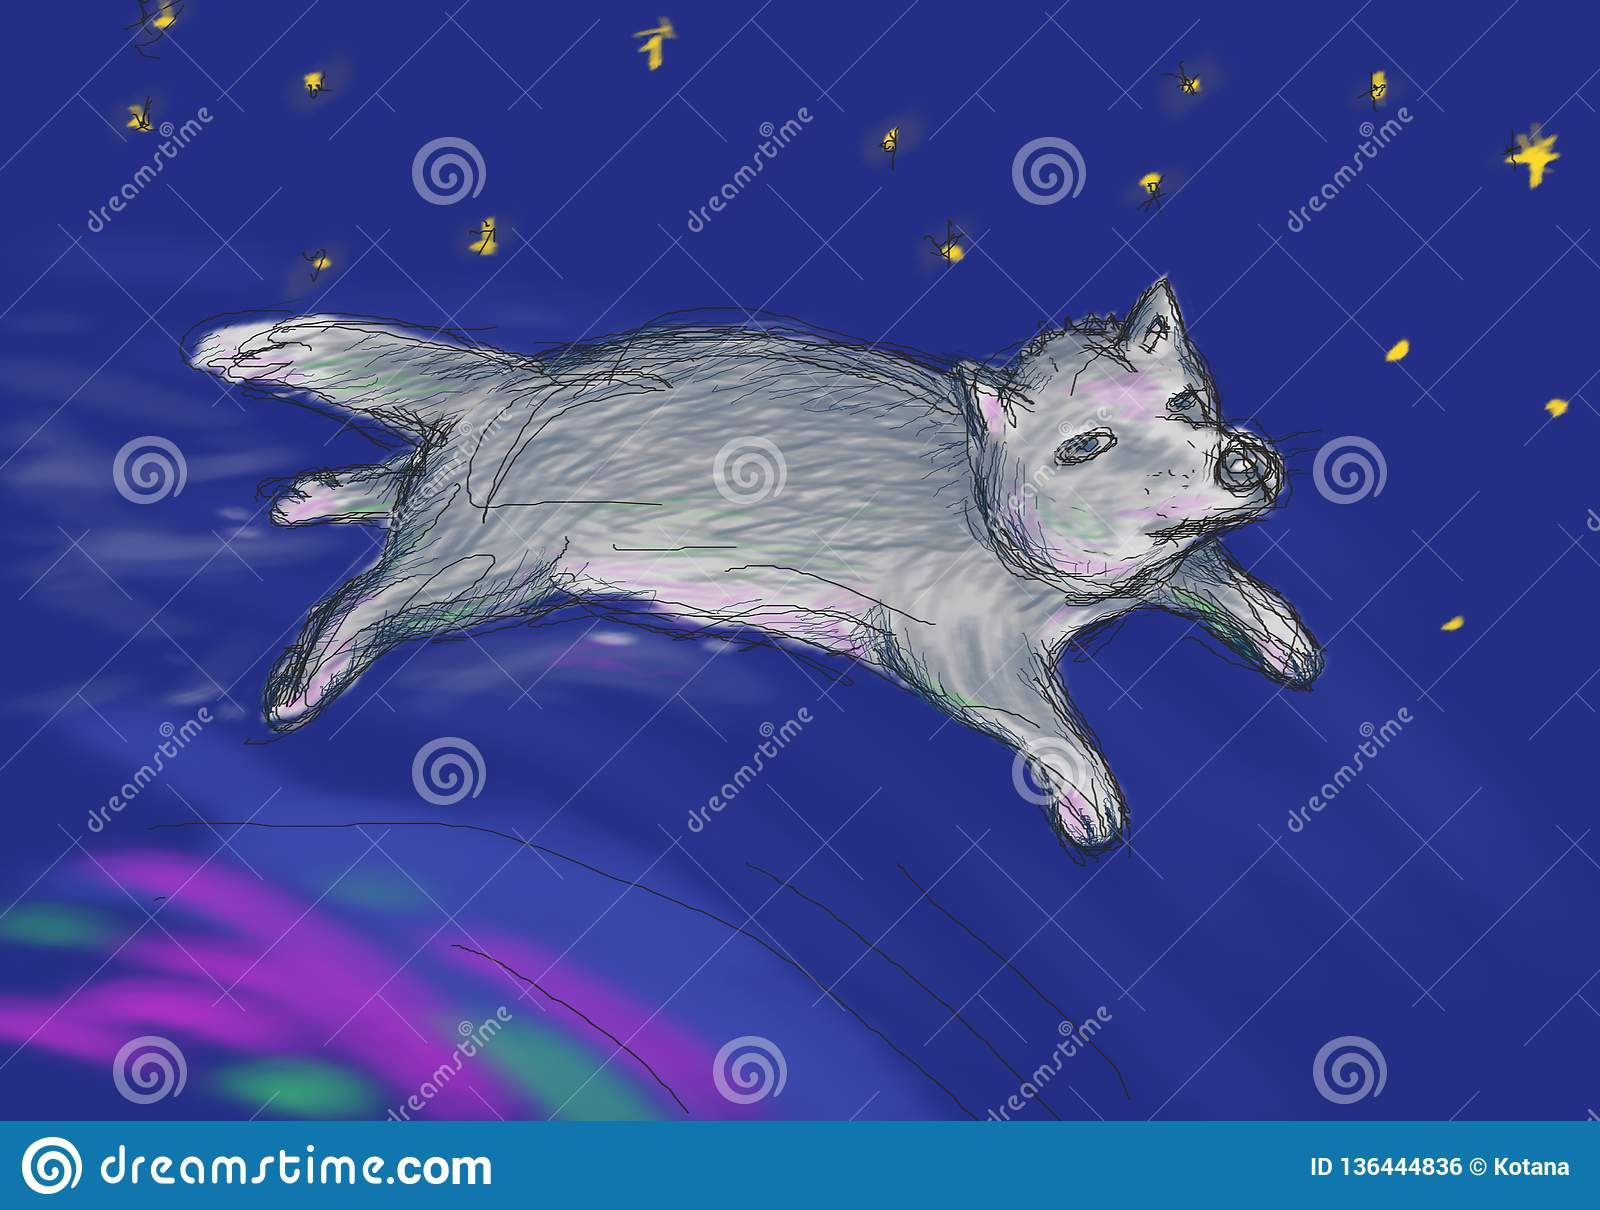 Fairy wolf flying over the northern lights in space. Illustration for children`s book, metaphorical cards, oriental horoscope